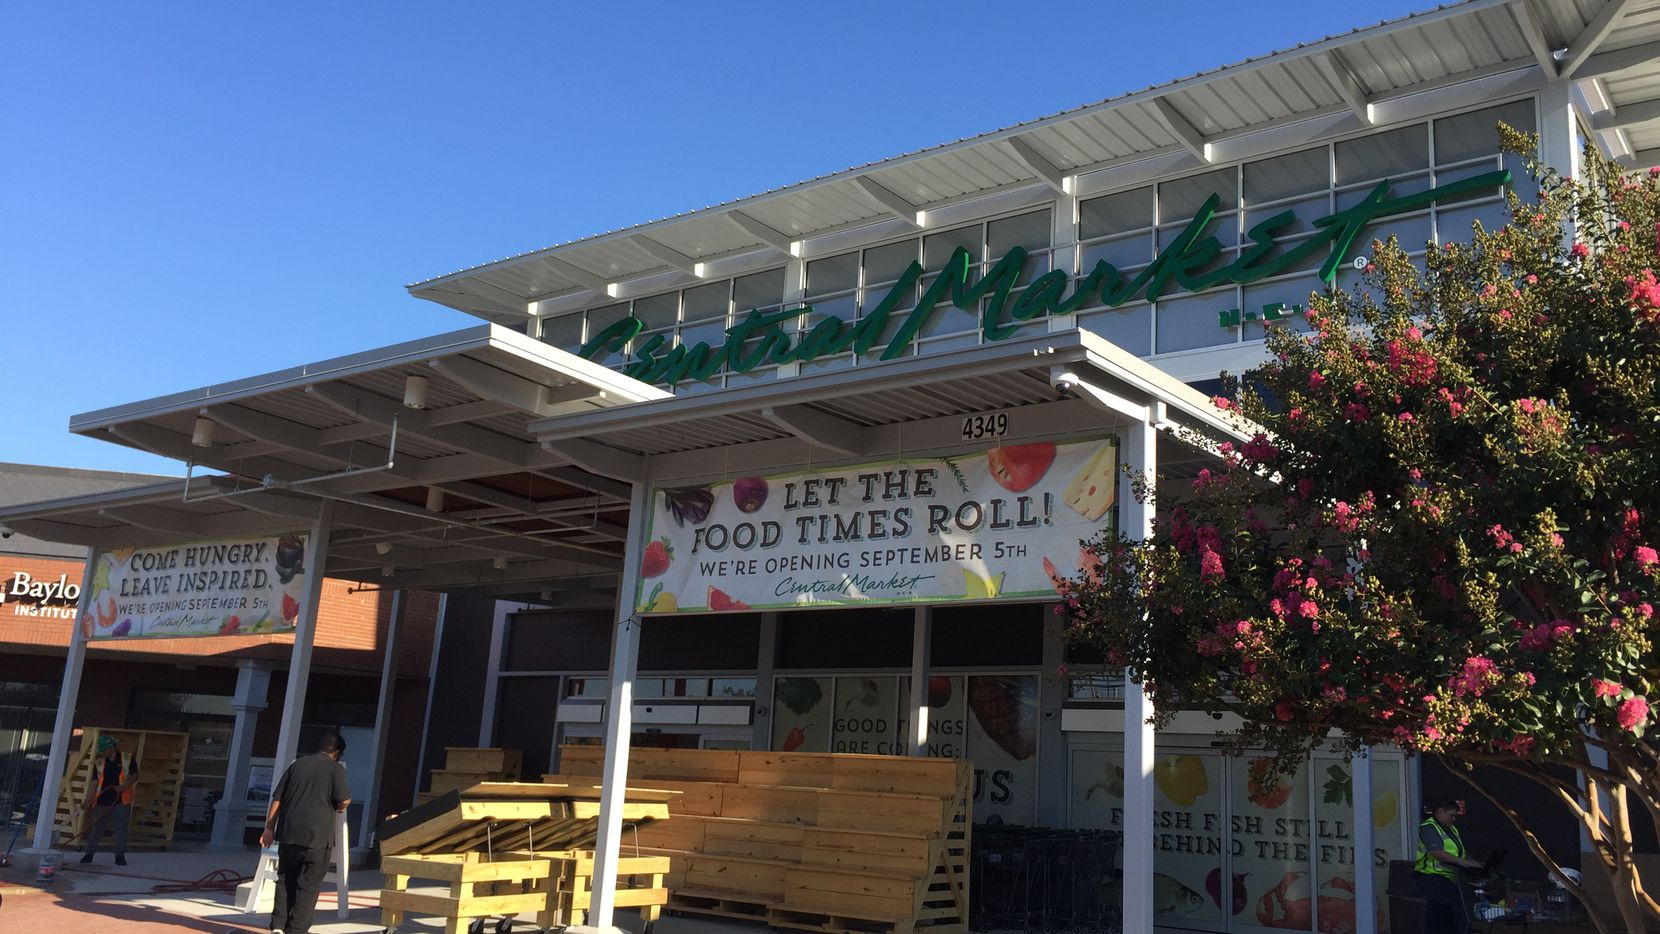 Central Market opens at 4349 W. Northwest Highway in Dallas on Sept. 5, 2018.